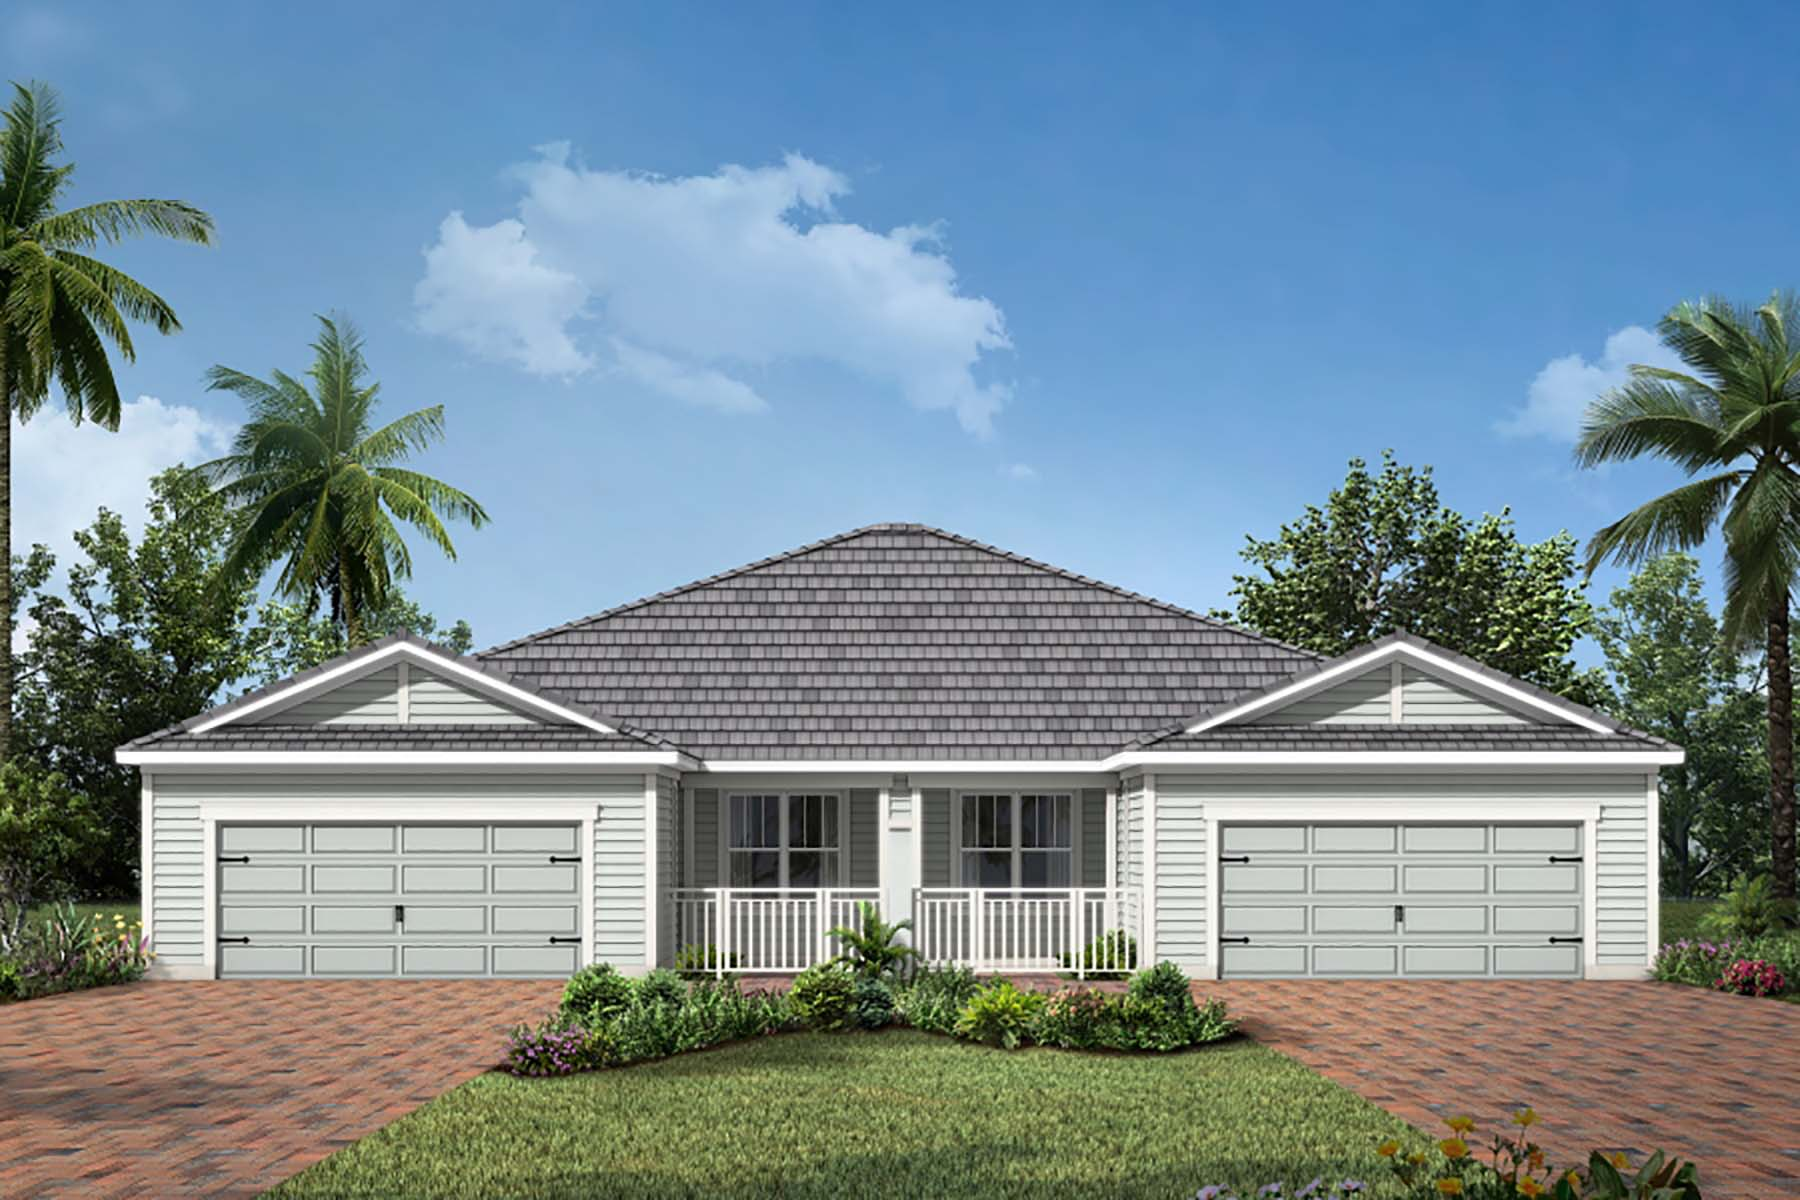 Bayport Plan Elevation Front at Sunrise Preserve at Palmer Ranch in Sarasota Florida by Mattamy Homes